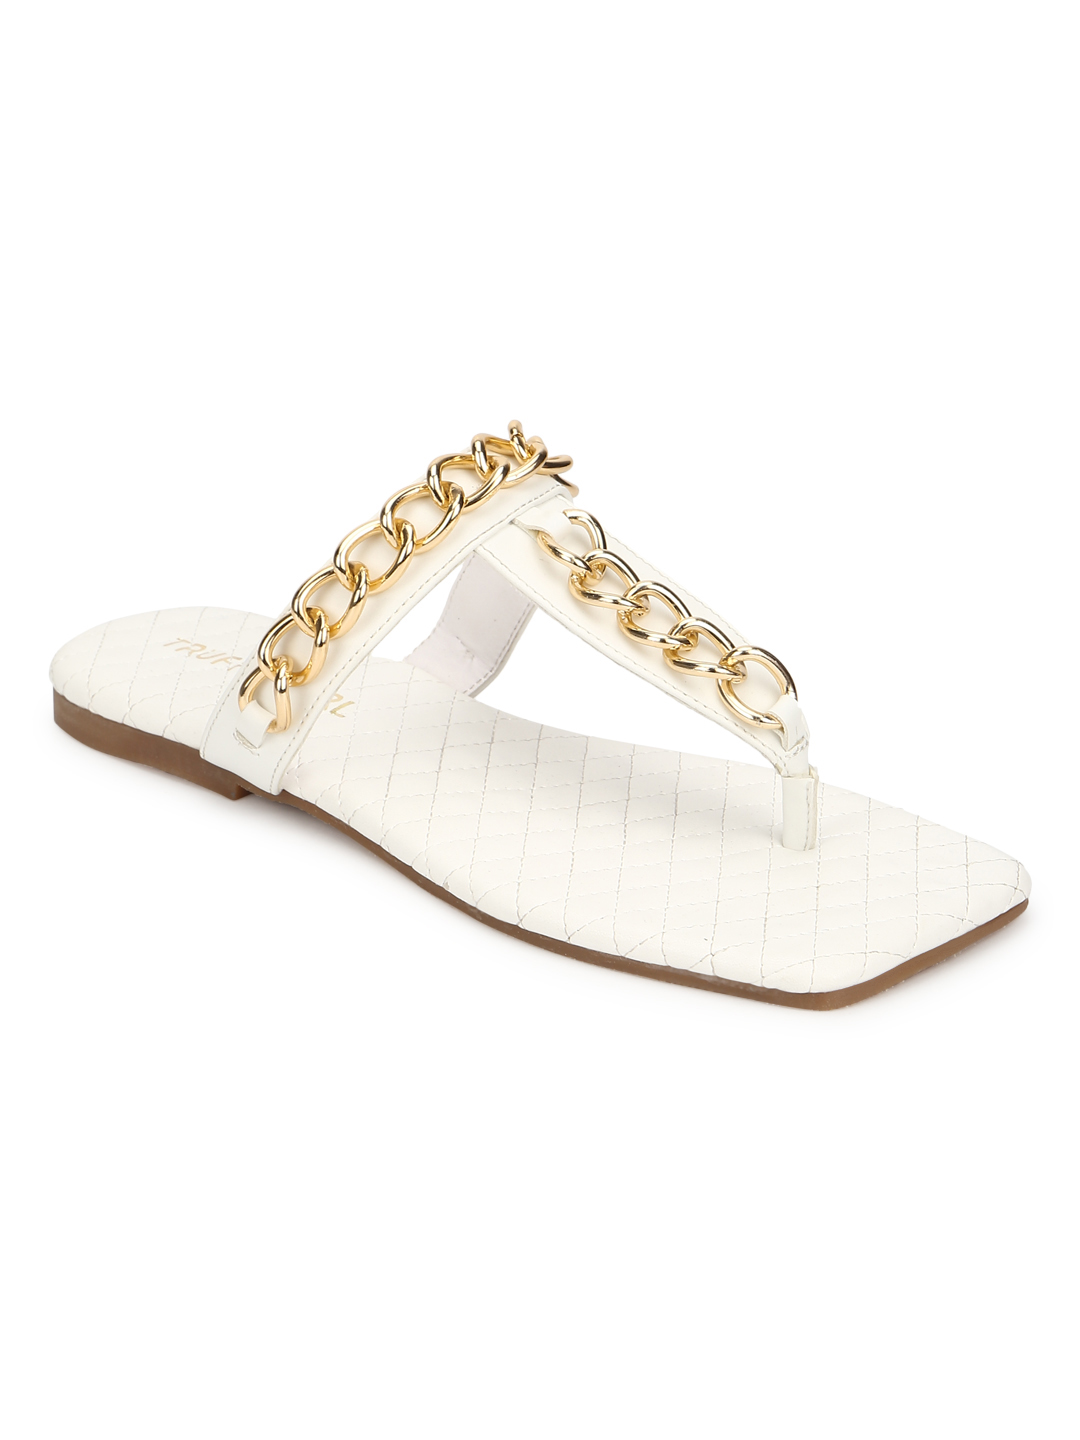 Truffle Collection | Truffle Collection White PU Flip Flops With Gold Chain